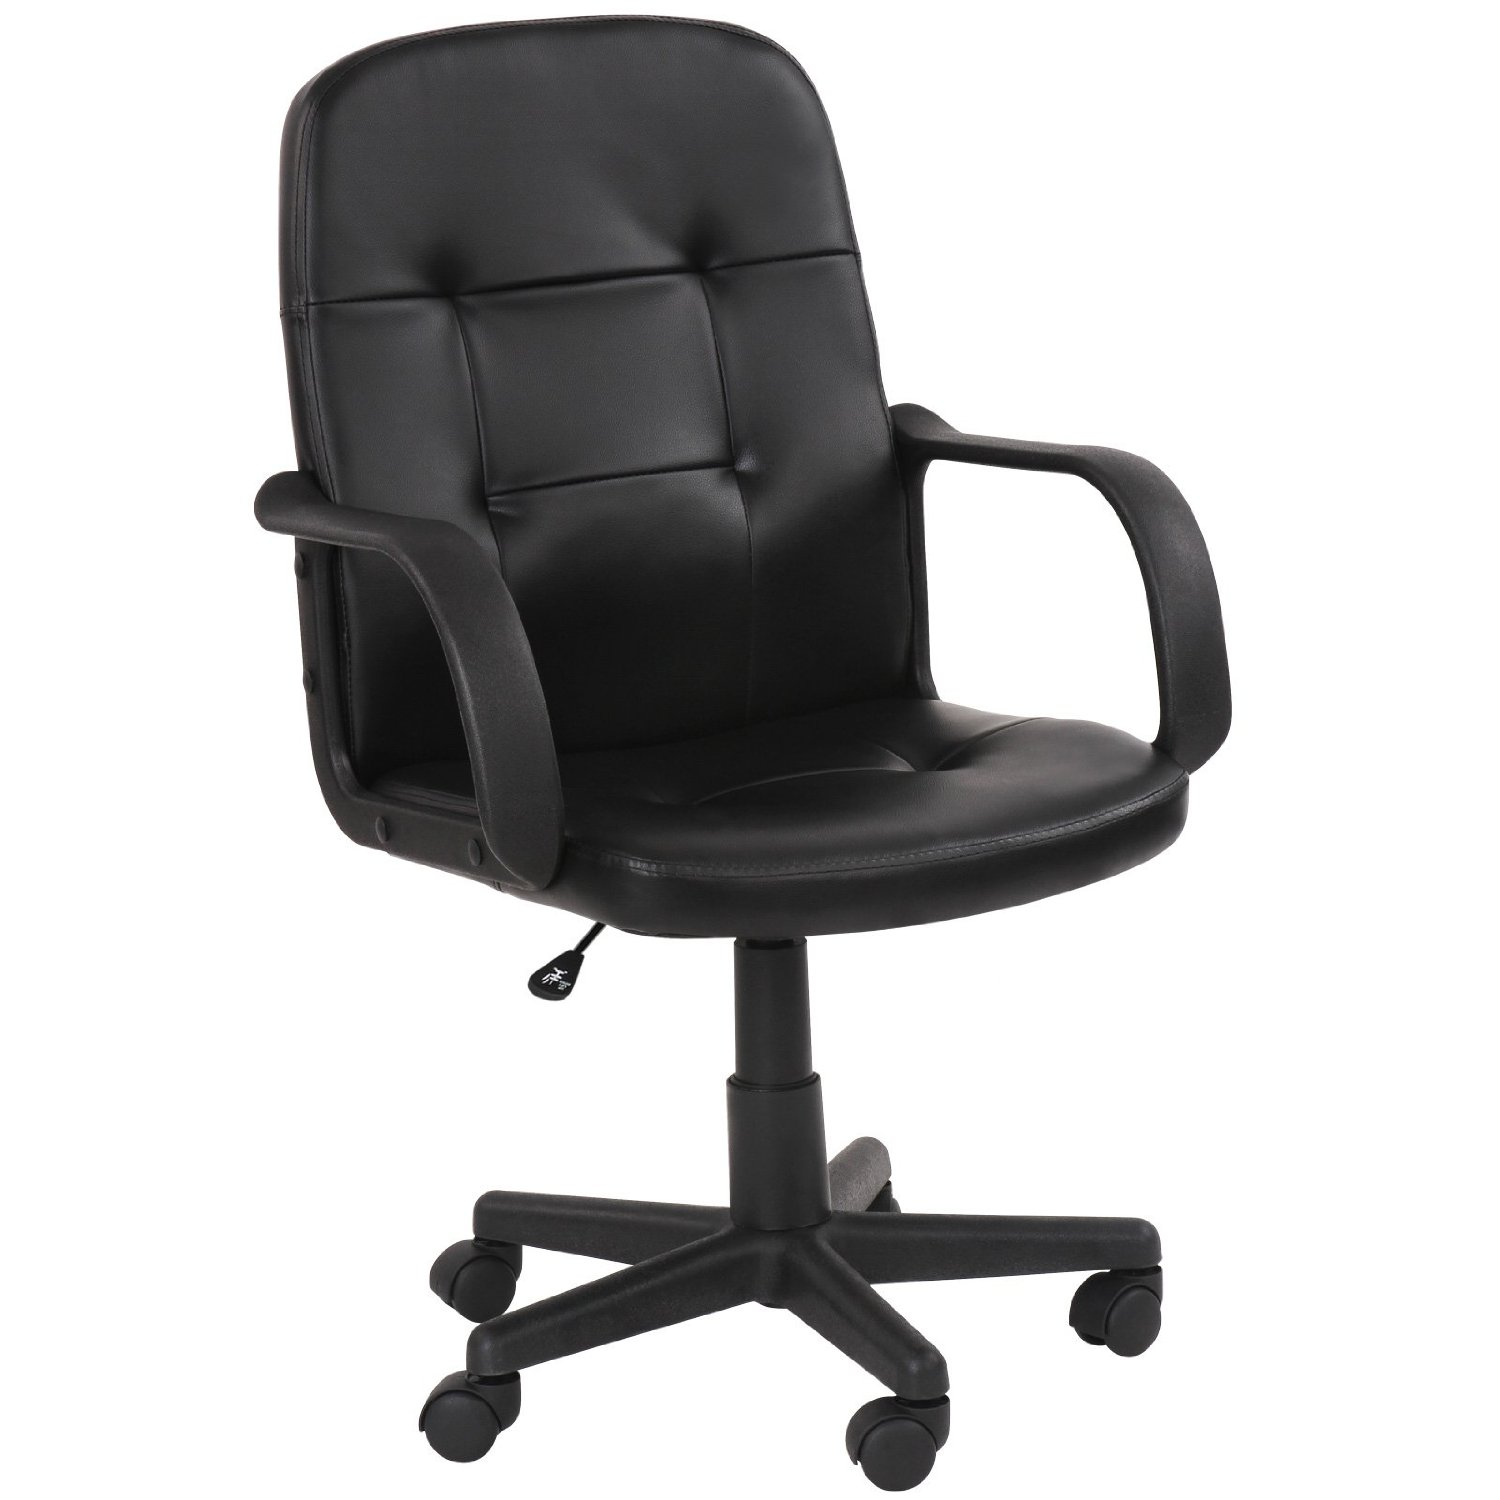 Miadomodo office swivel chair black ergonomic height for Swivel chairs for office